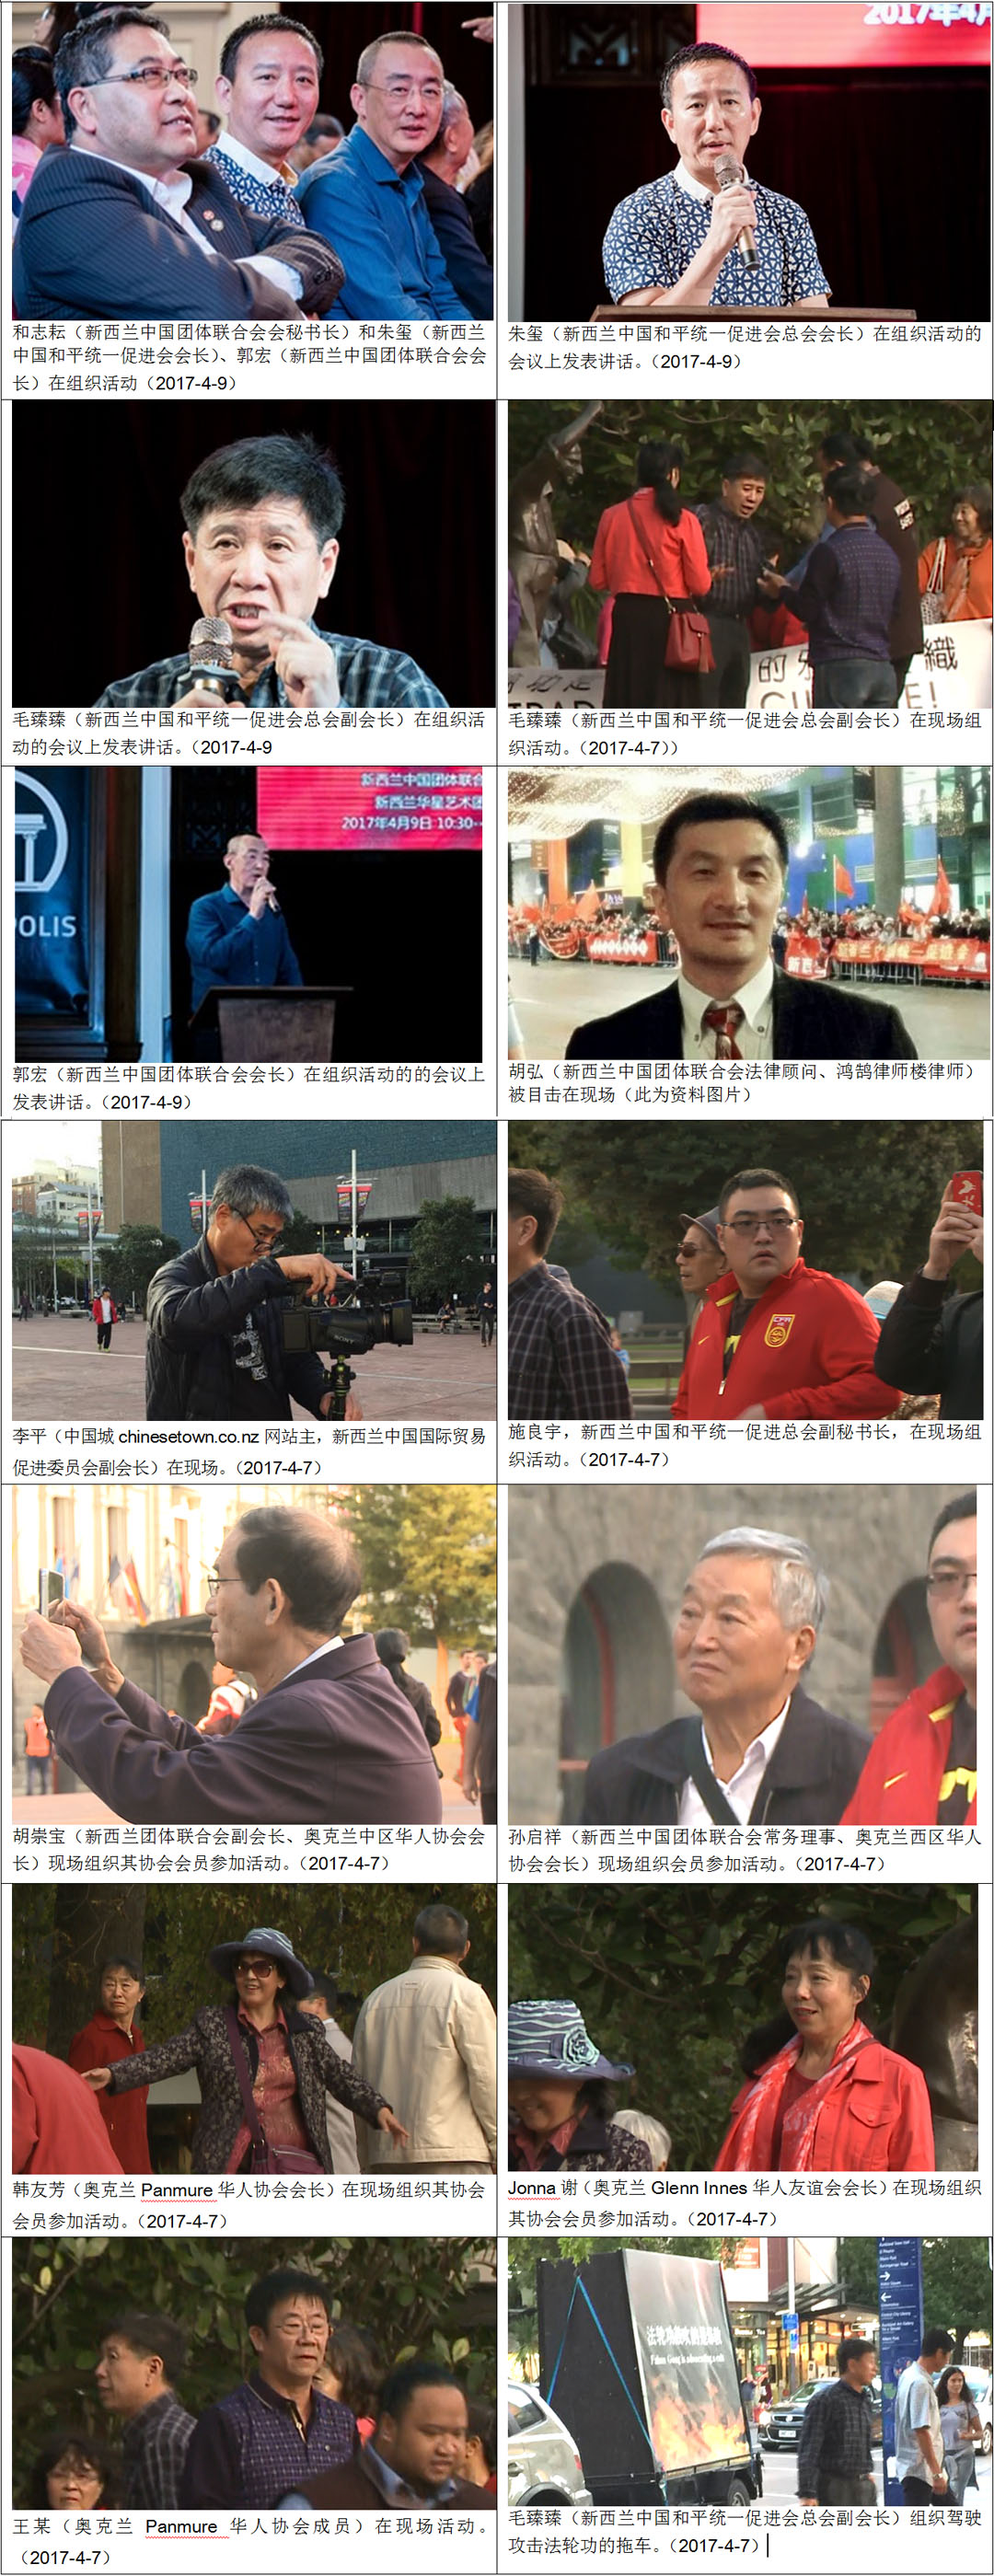 On April 7 2017, the United Chinese association of NZ and the PRCANZ organised a gathering of over a hundred people to protest against the performance of Shen Yun performing arts from New York. (source: Investigation report)